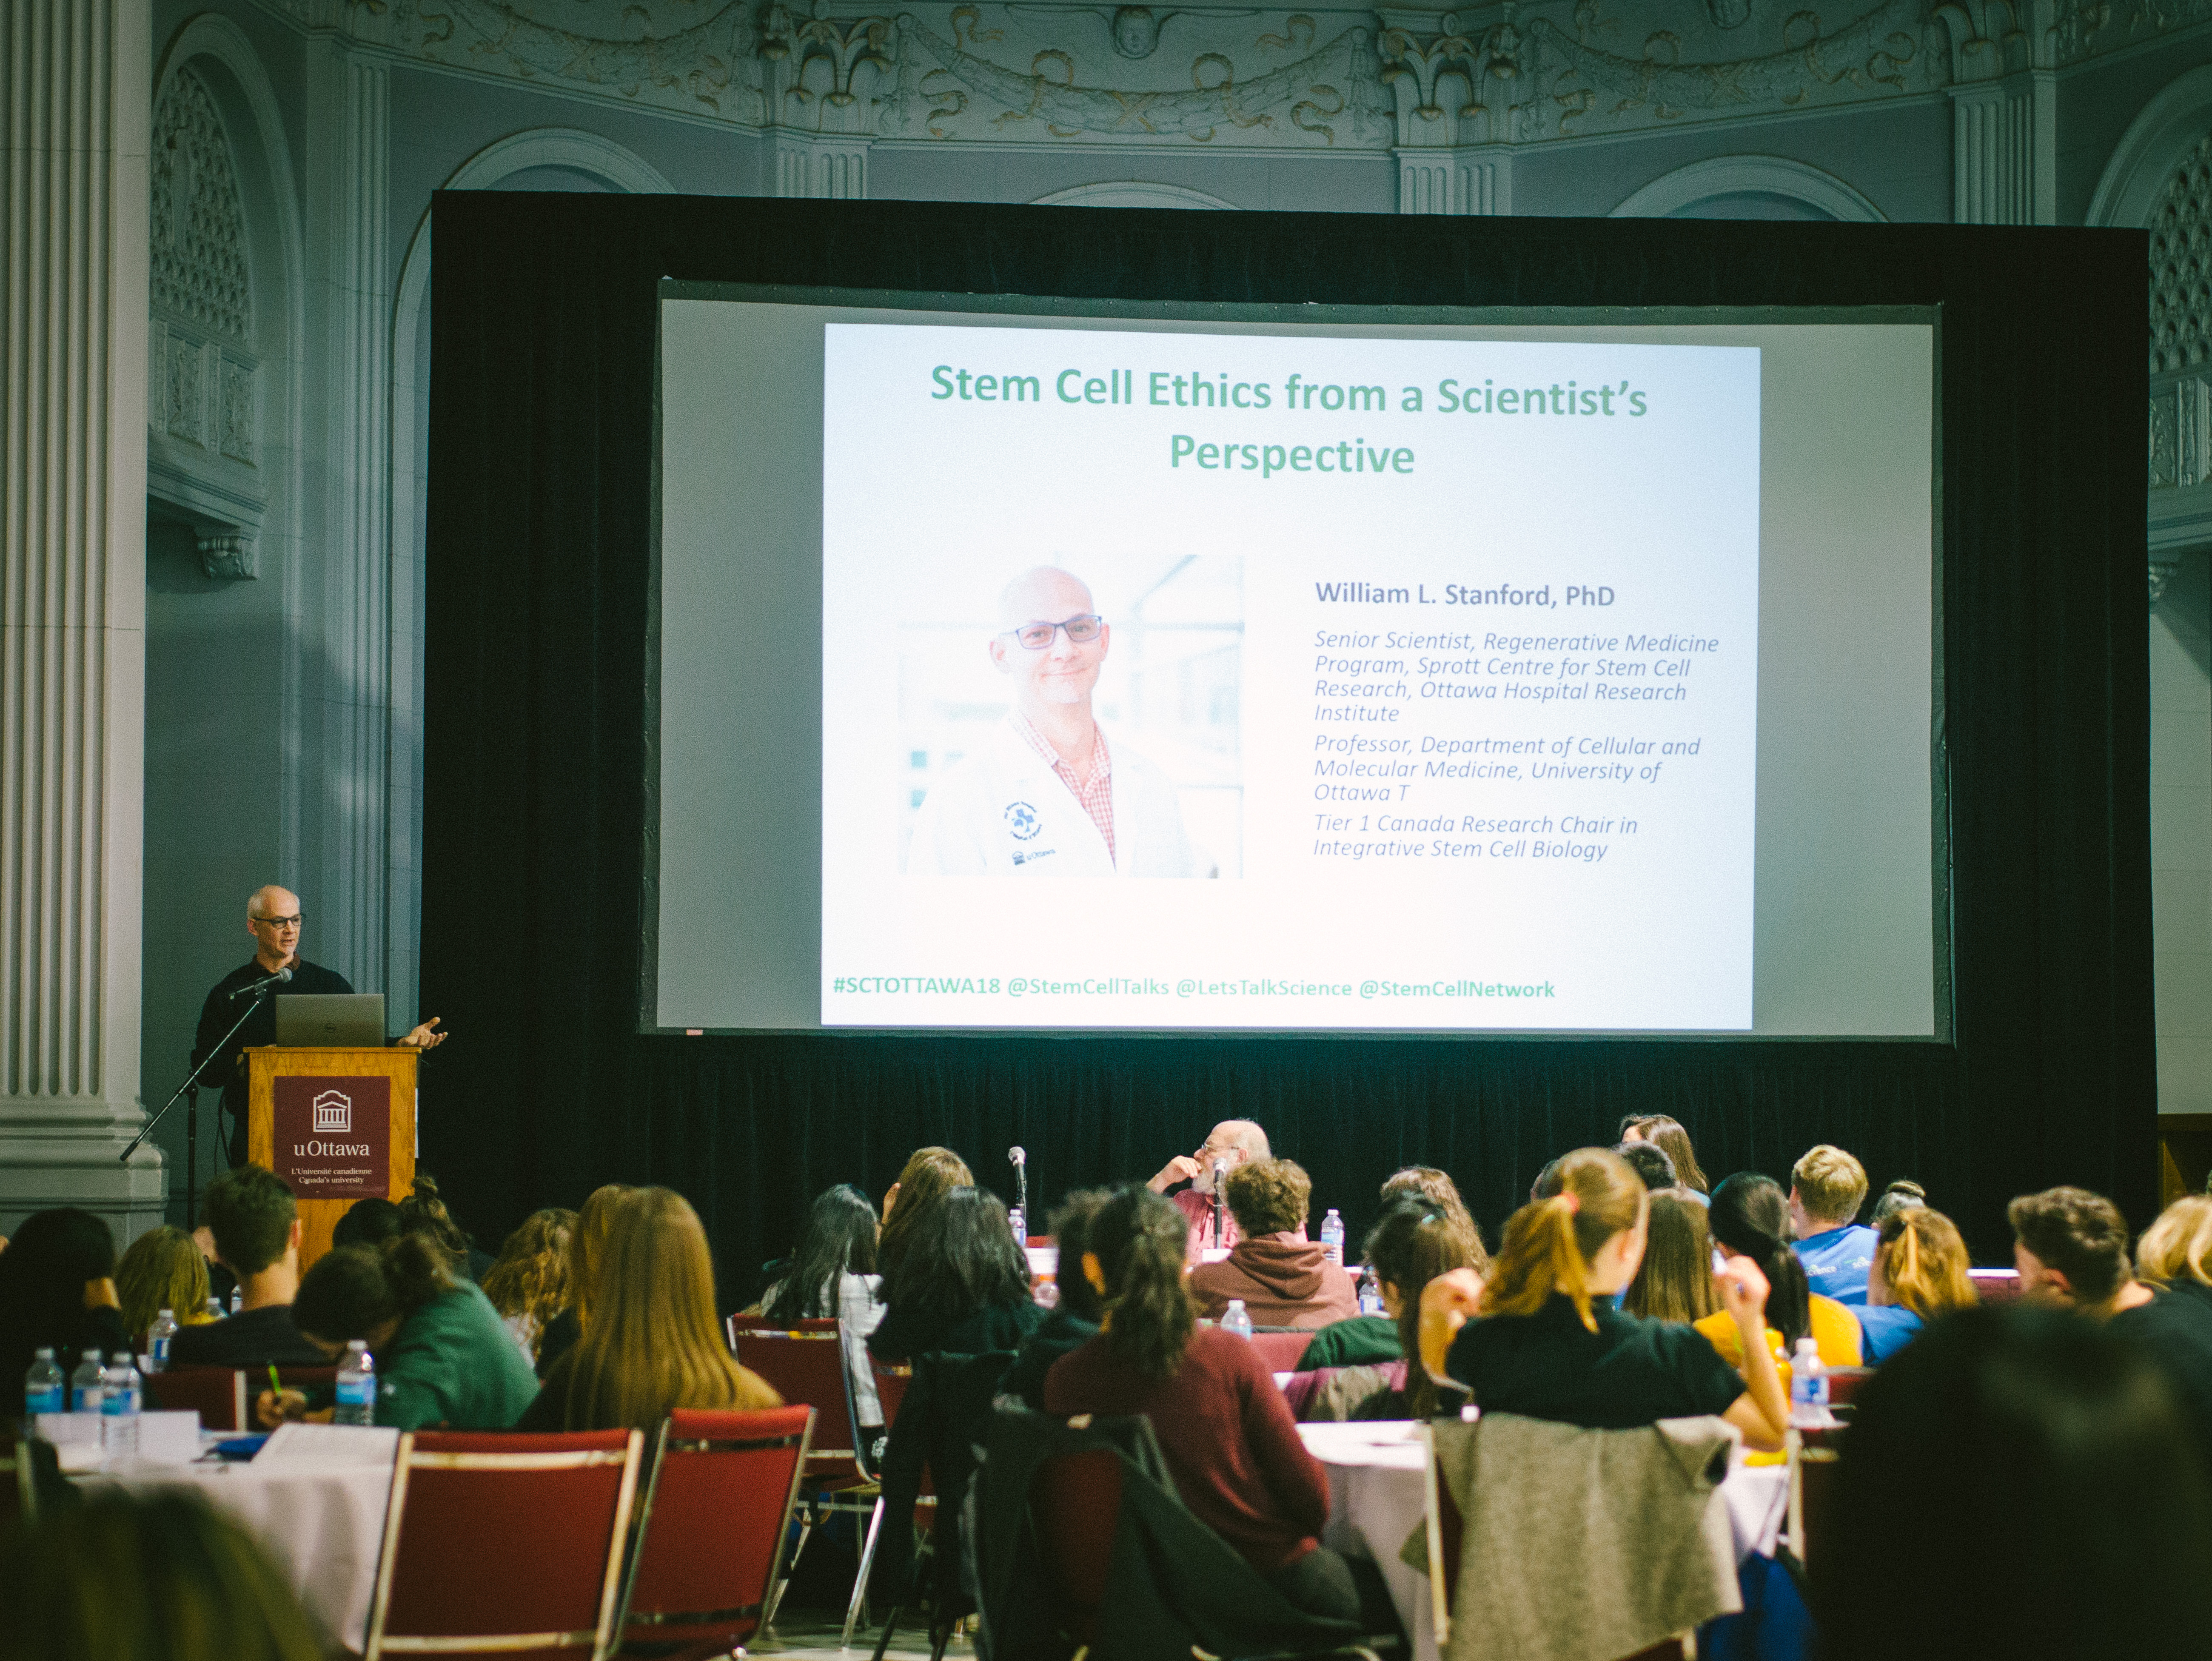 William L. Stanford presenting to group of youth on stem cell ethics